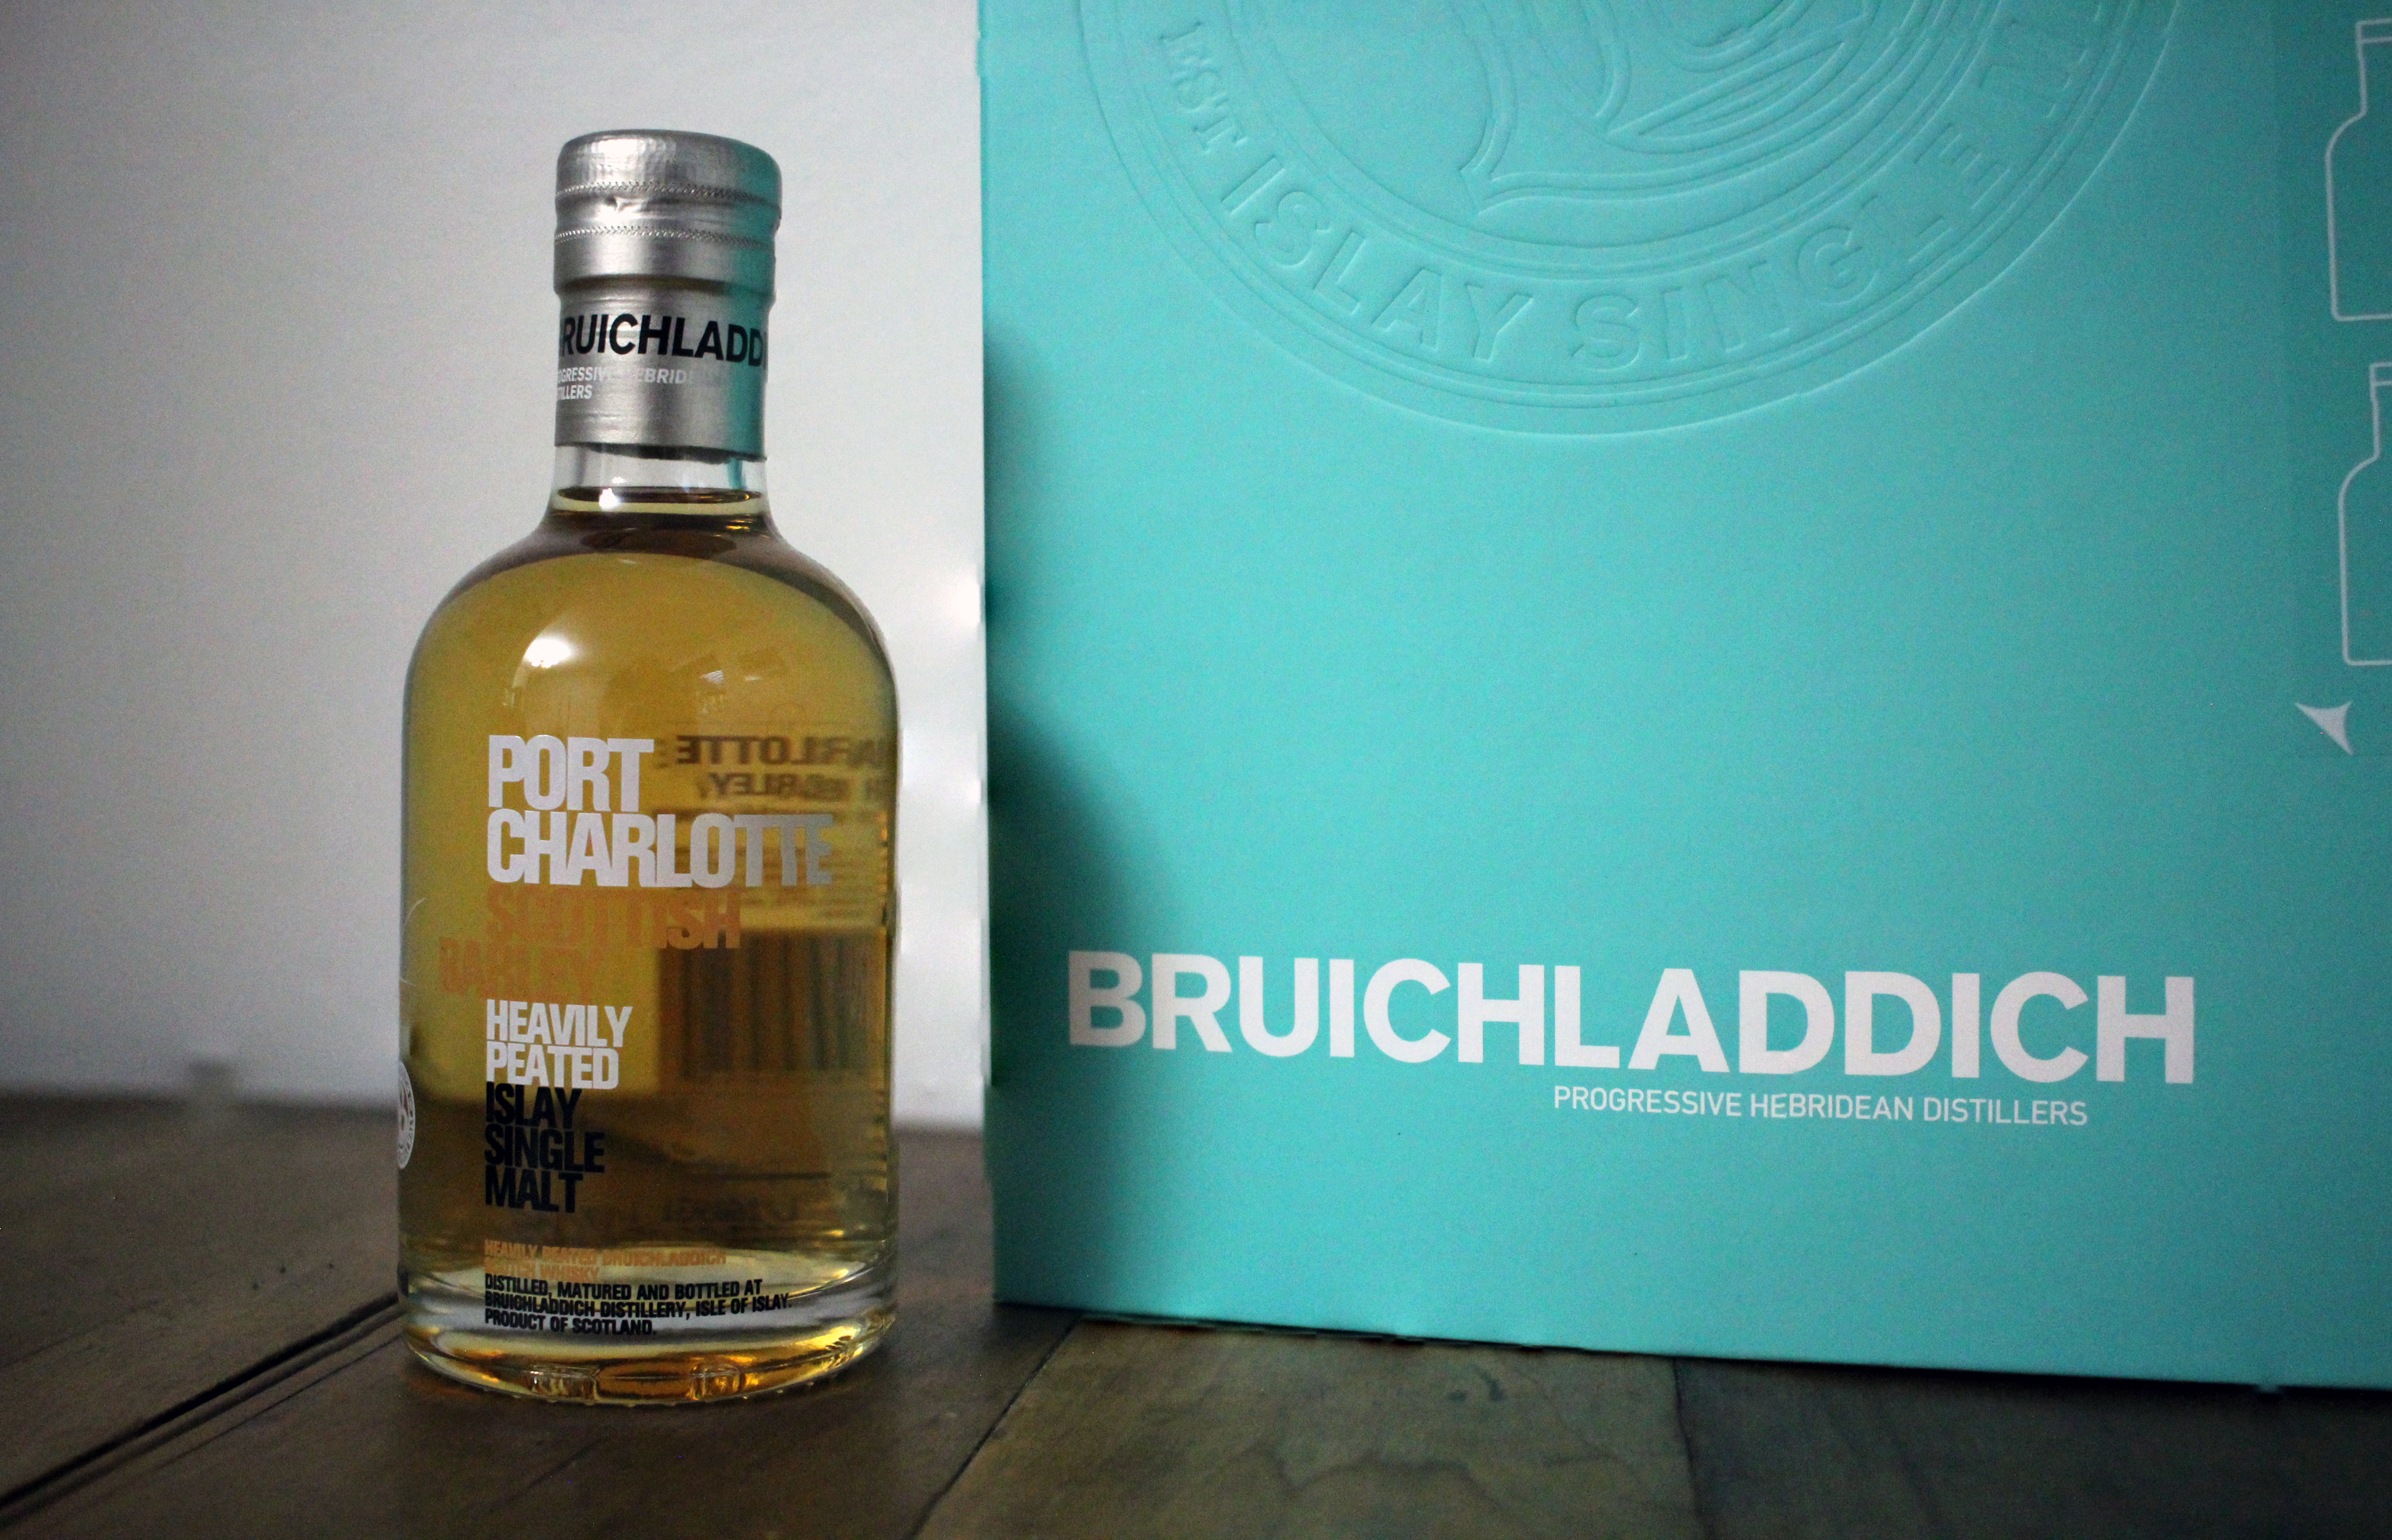 Bruichladdich Port Charlotte Heavily Peated Scottish Barley with Dan & Ryan